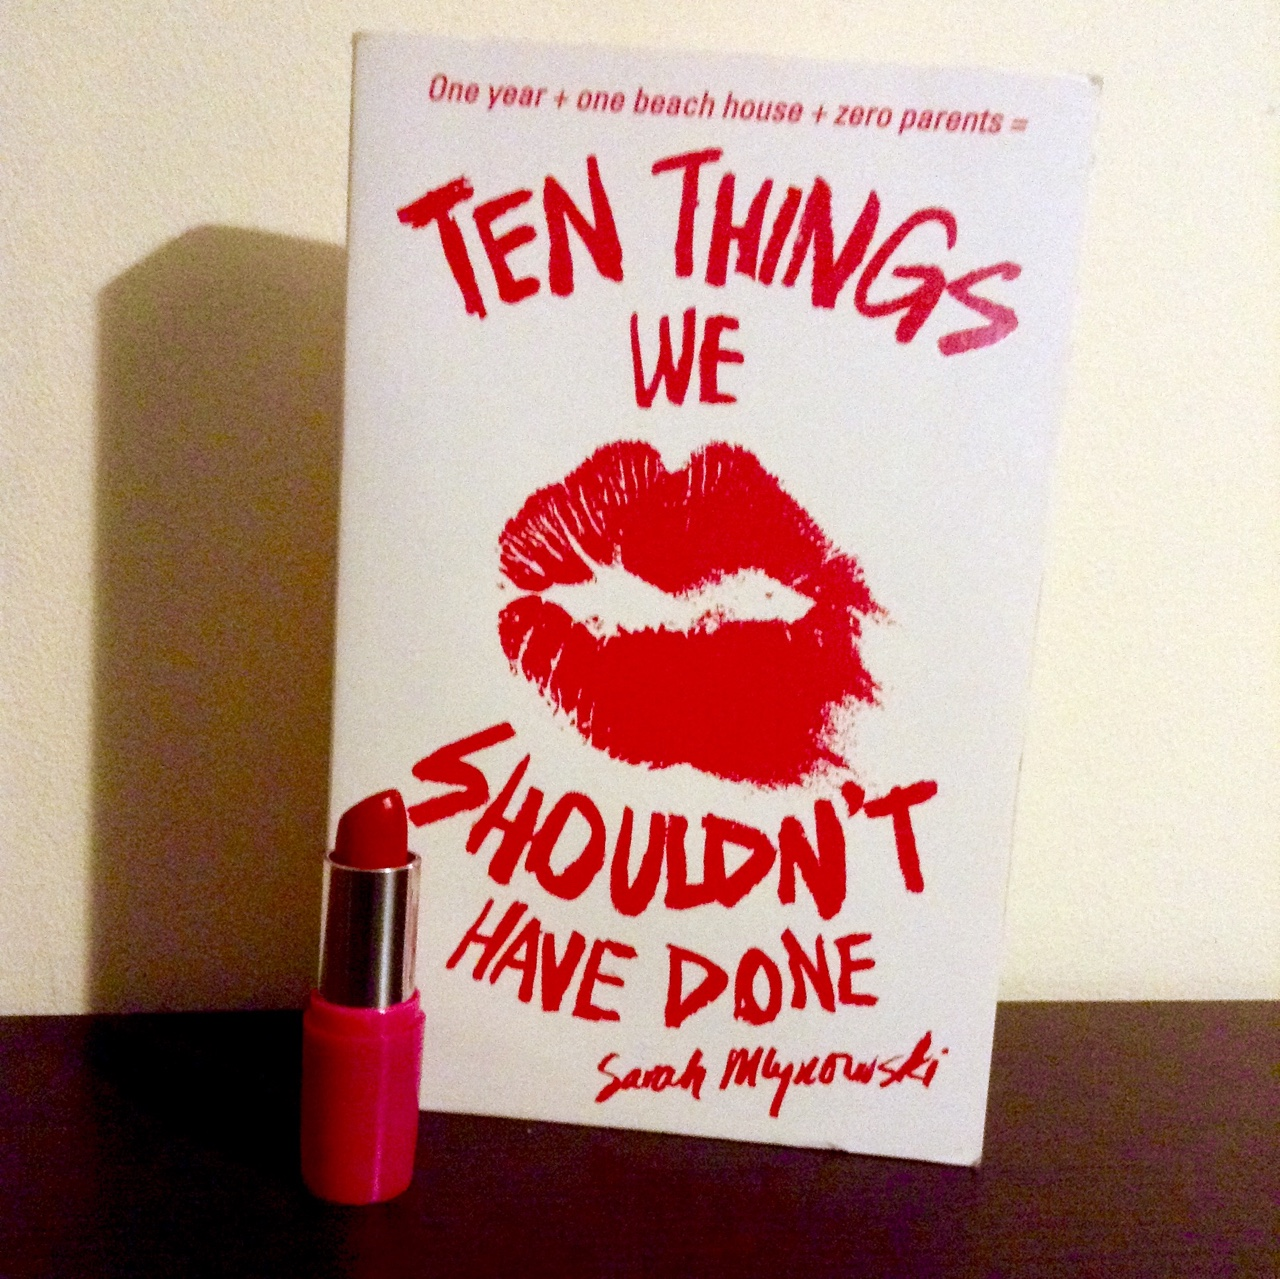 booksandclevernxss: February 17th - Standalone Ten Things We Shouldn't Have Done by Sarak Mlynowski